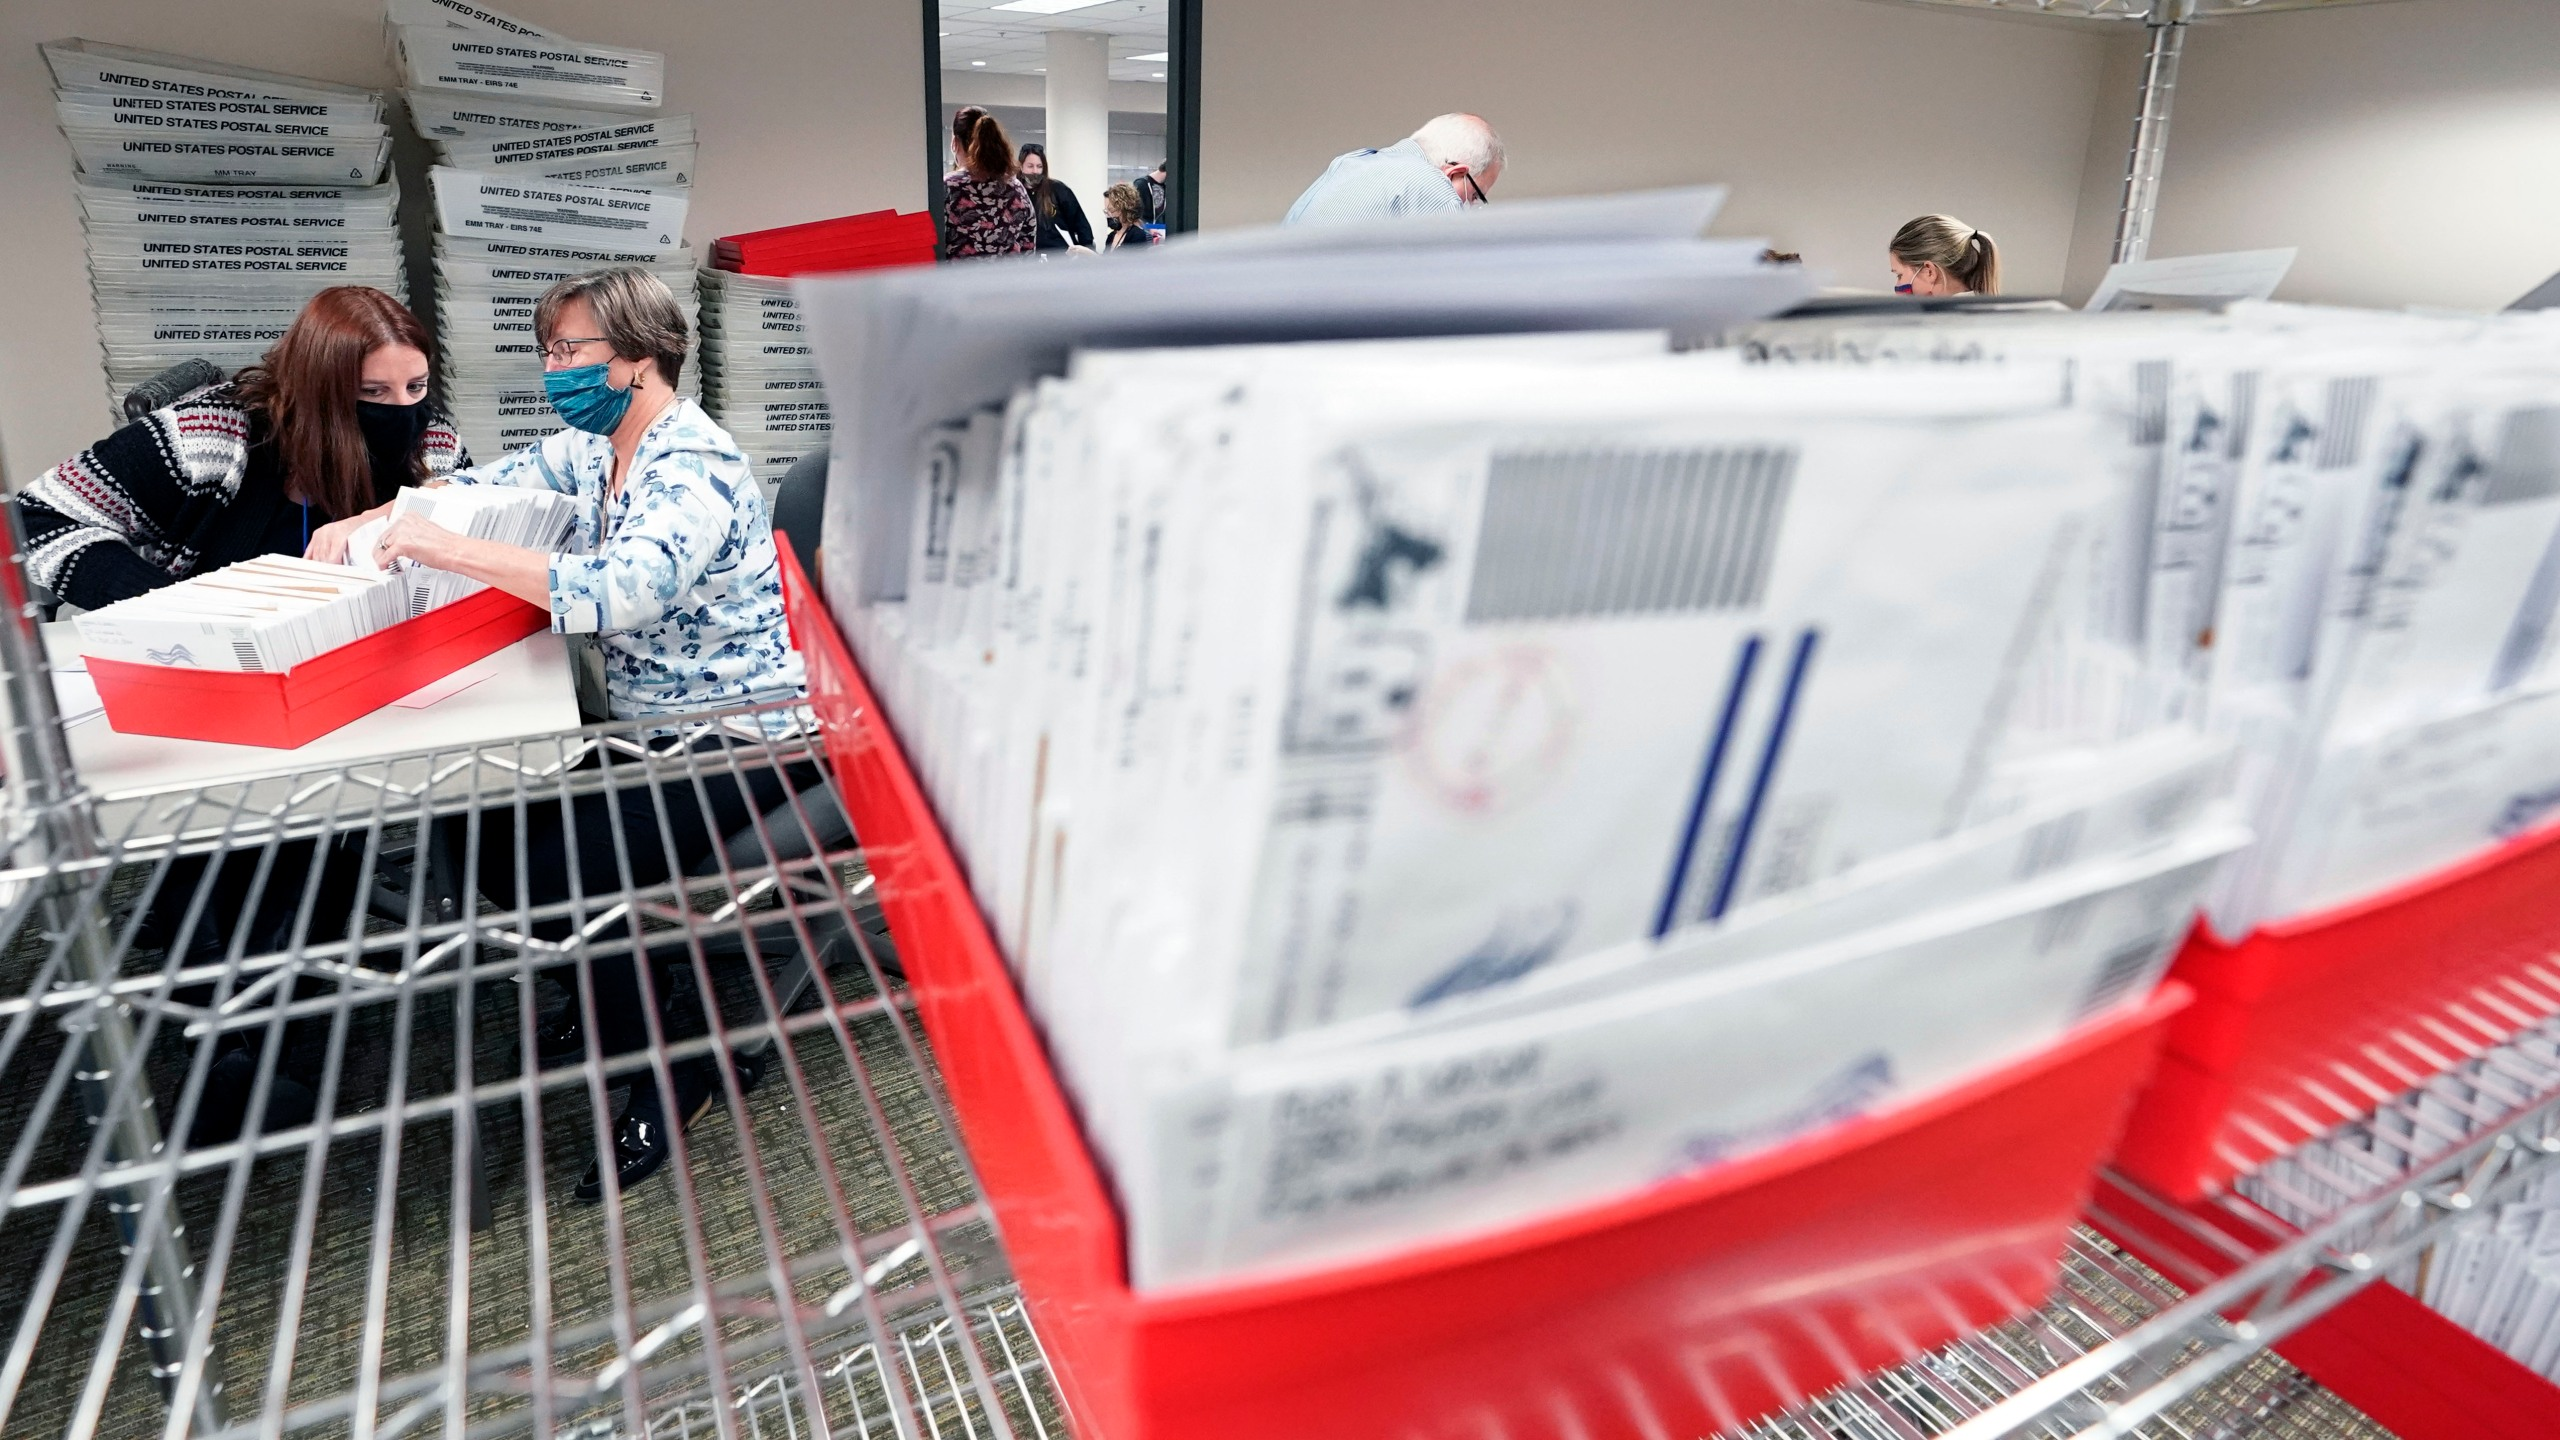 In this Nov. 5, 2020, photo, Lehigh County workers count ballots as vote counting in the general election continues in Allentown, Pa. (AP Photo/Mary Altaffer)